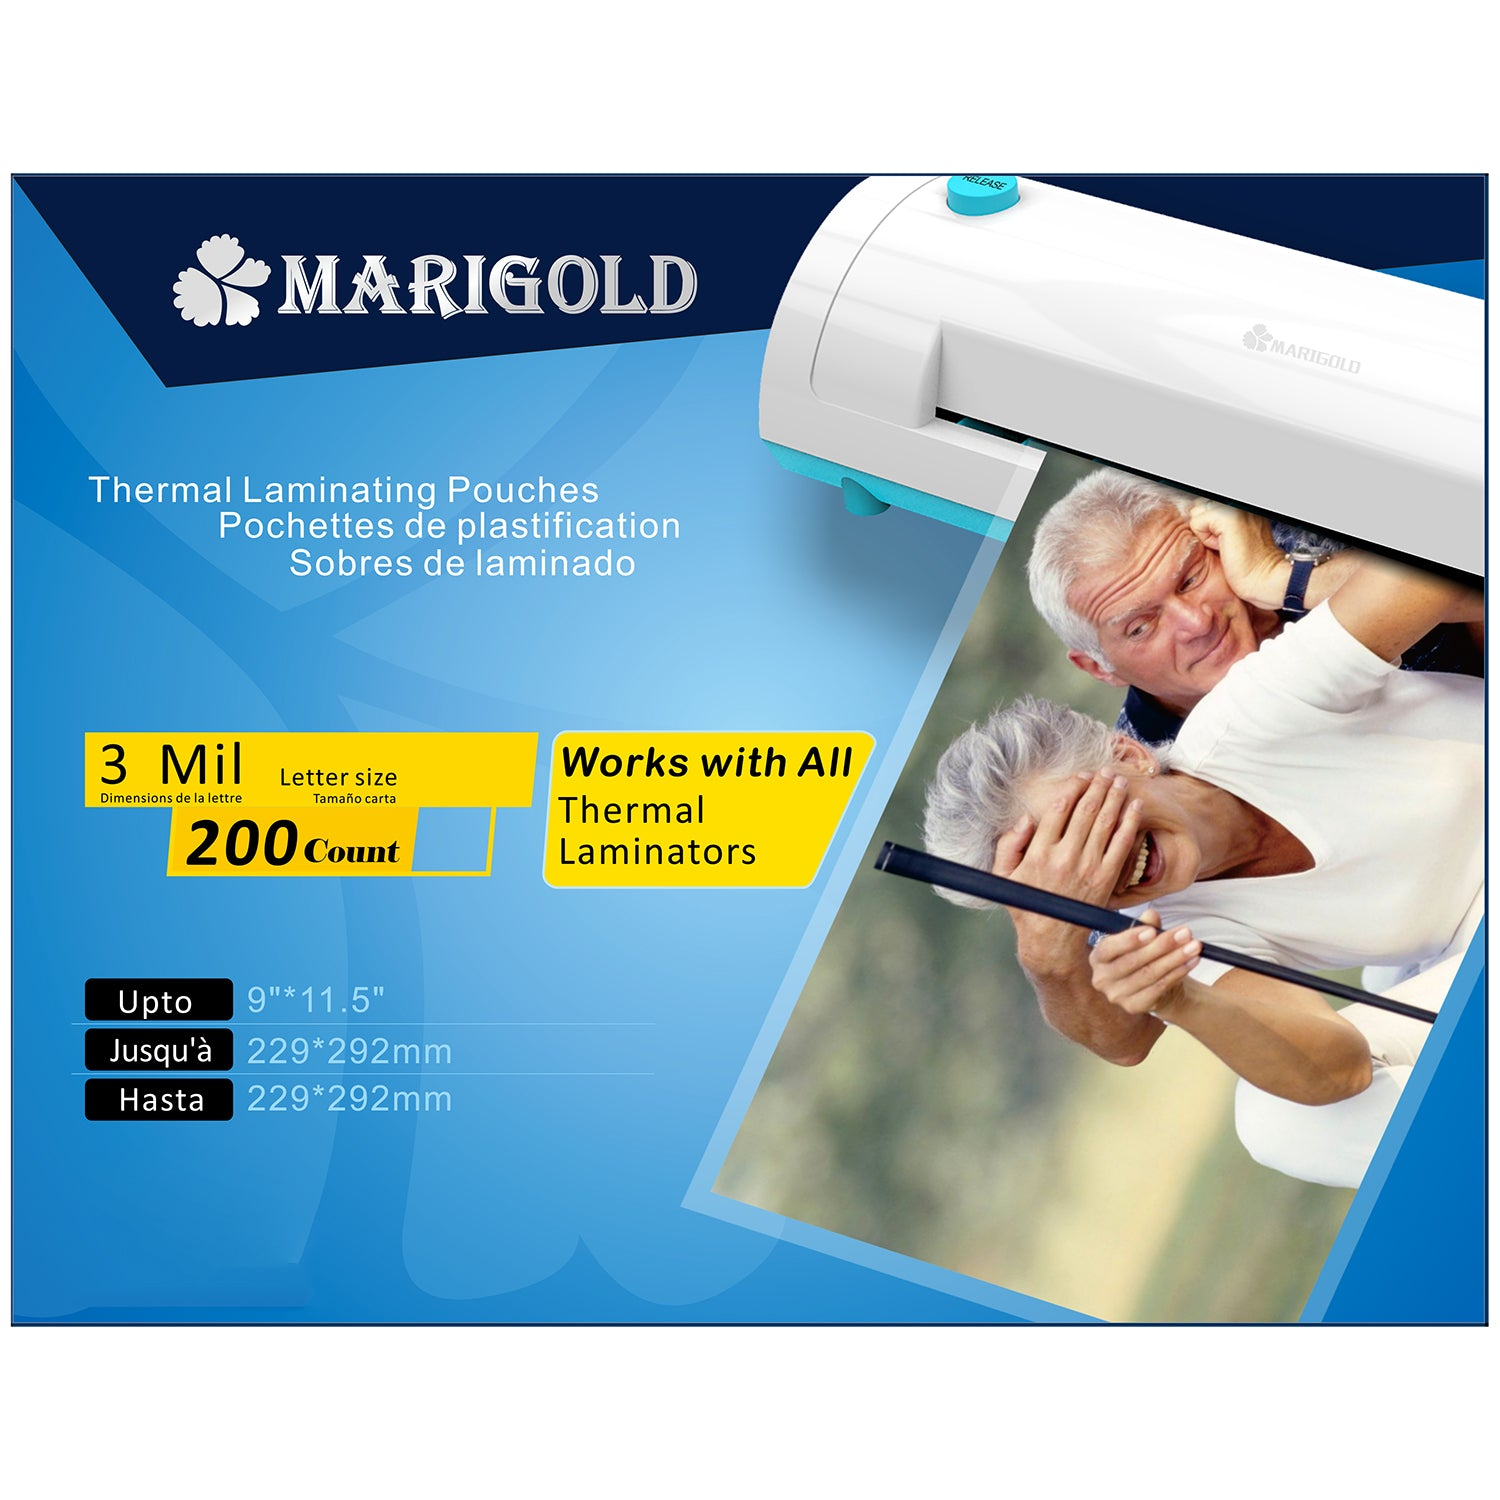 MARIGOLD 200-Pack Thermal Laminating Pouches - 3 mil Letter Size, 9